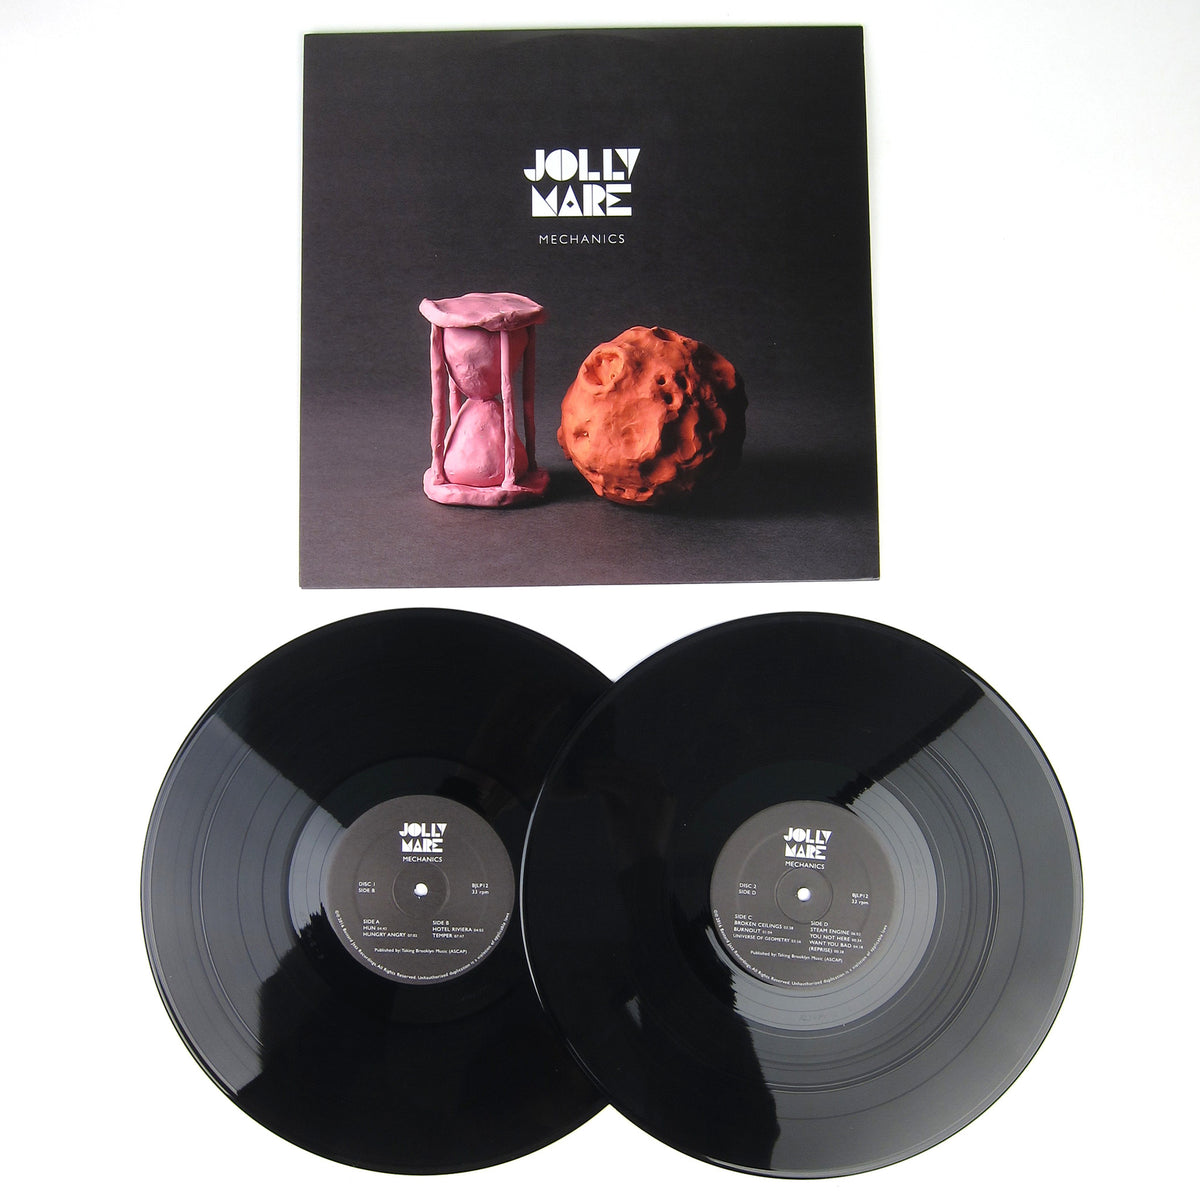 Jolly Mare: Mechanics Vinyl 2LP